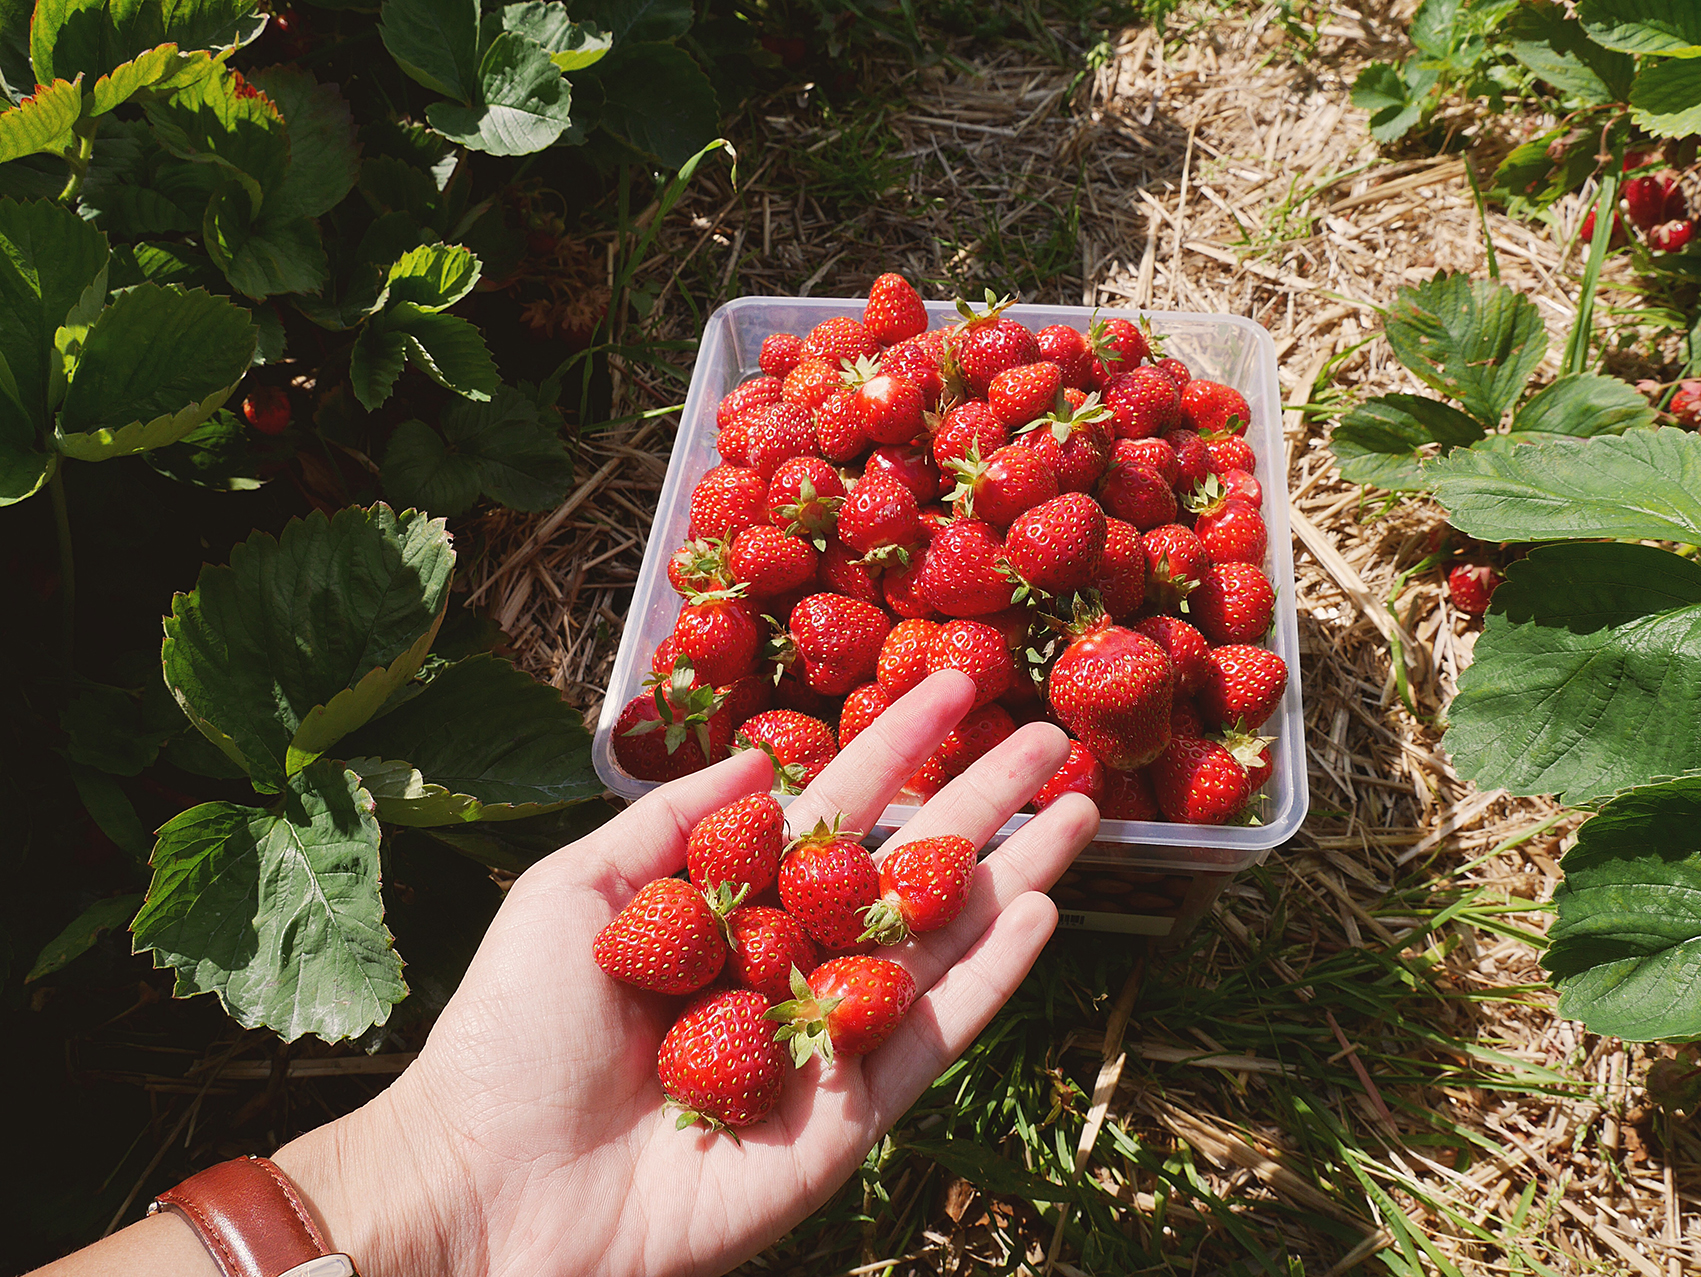 STRAWBERRY PICKING FARM